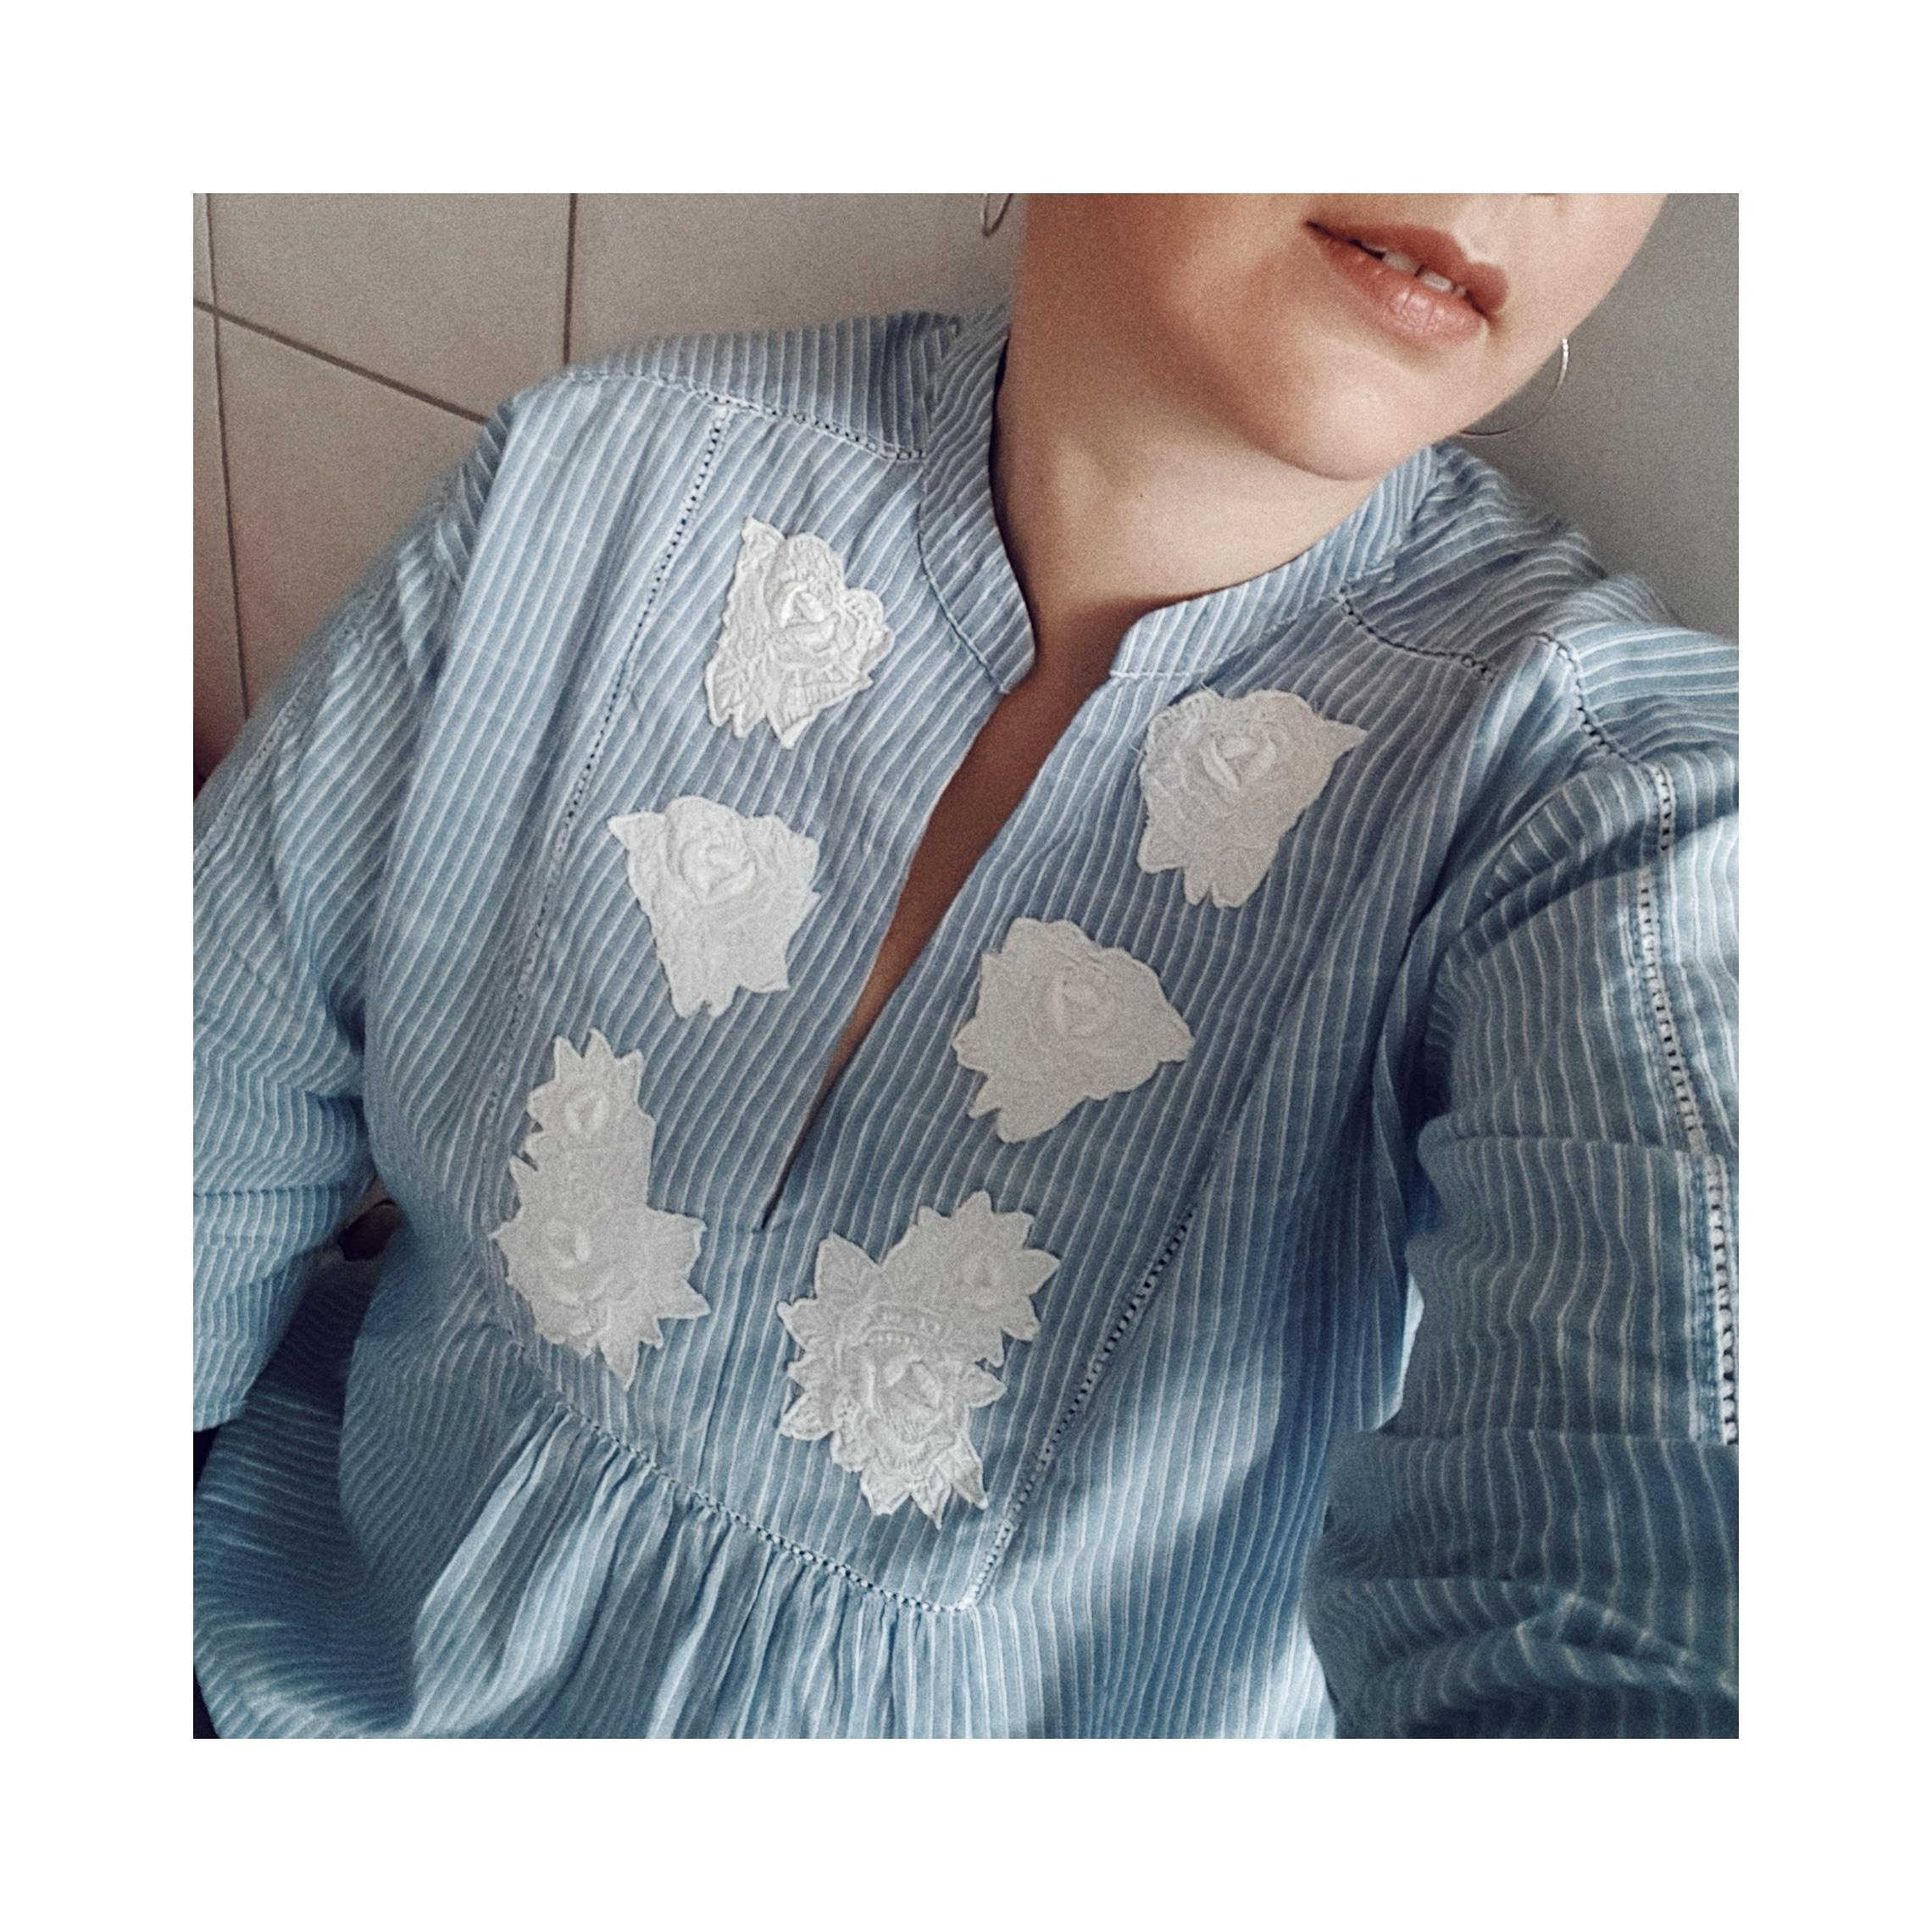 Applikationen 😍 #bluse #blau #gestreift #boho #fashion